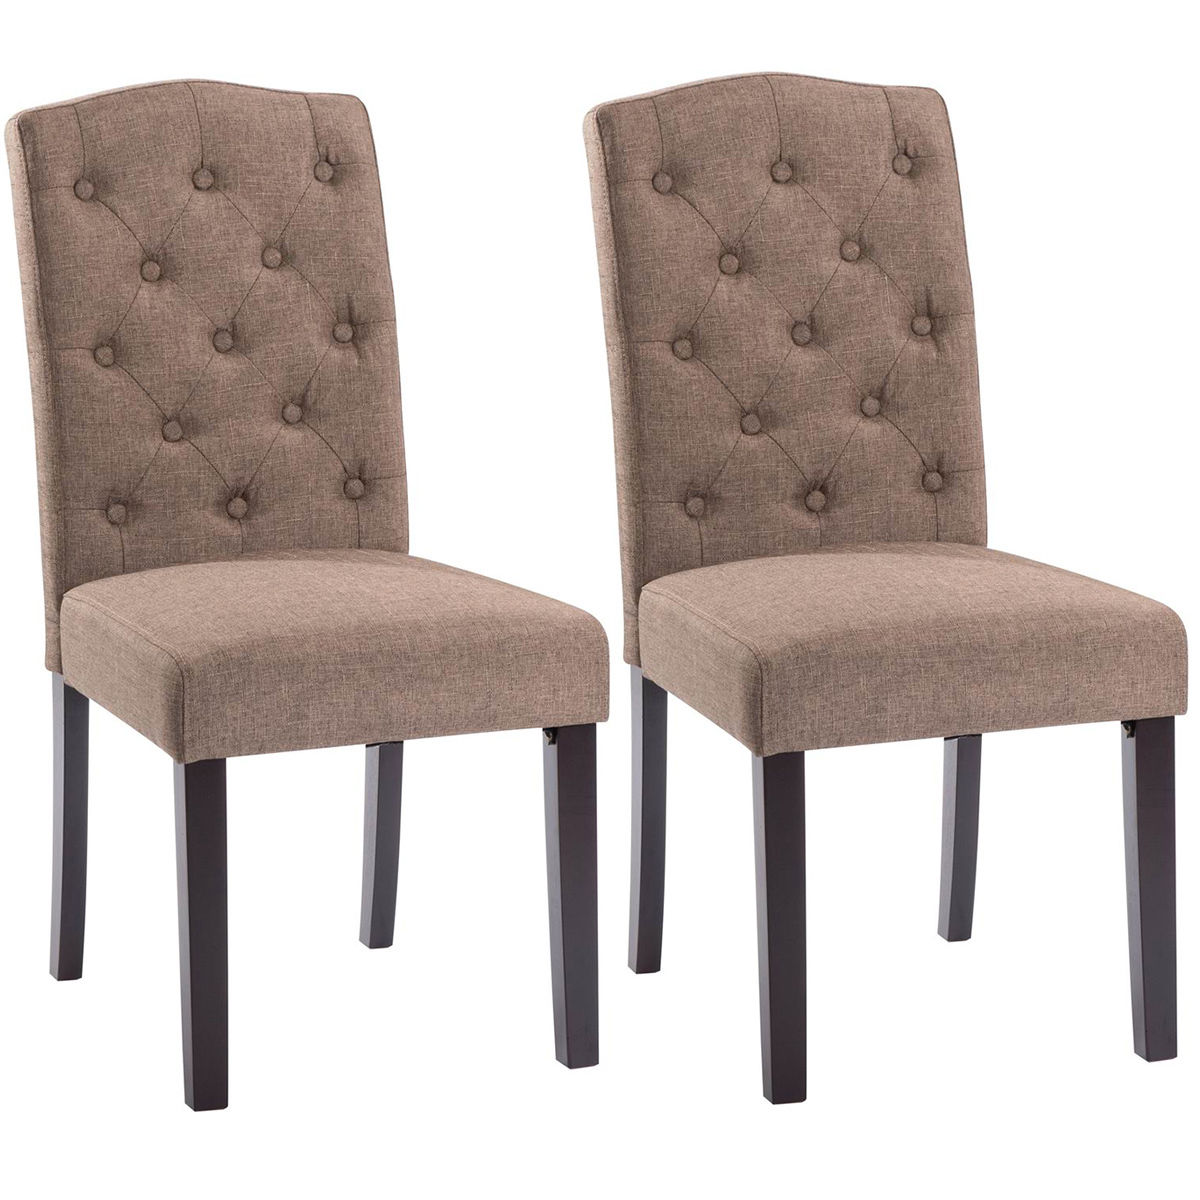 costway set of 2 linen fabric wood accent dining chair tufted modern living room brown